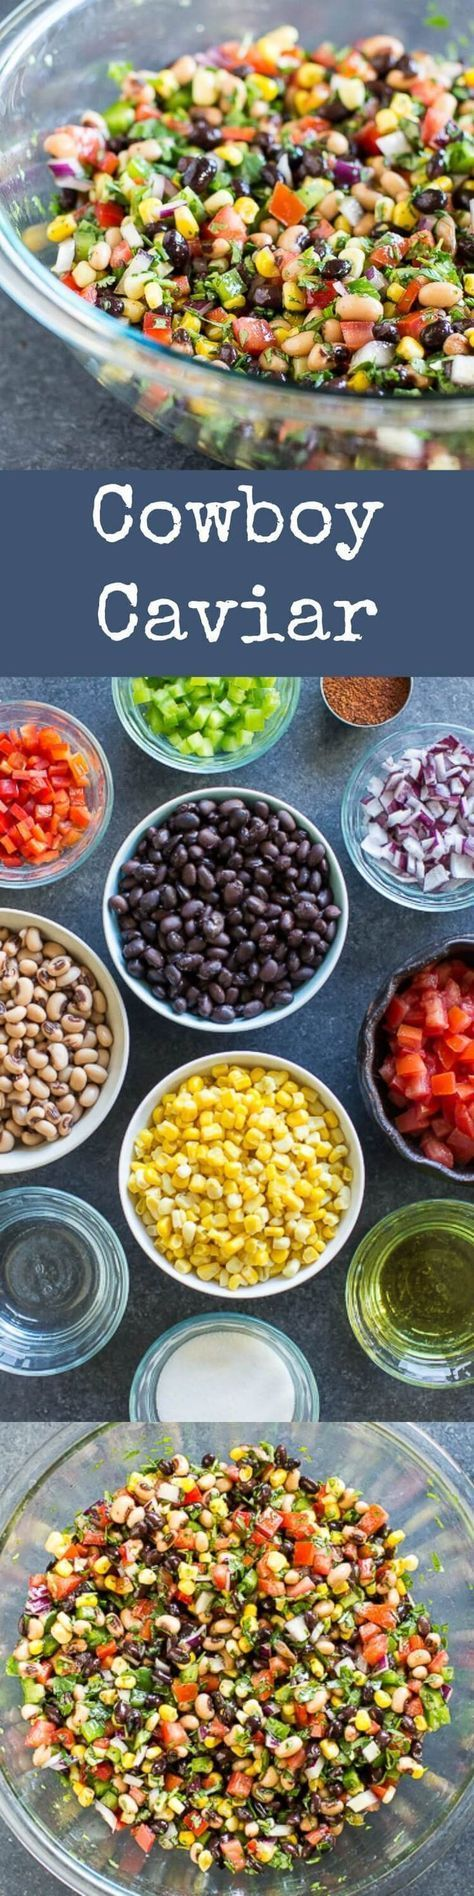 Cowboy Caviar is packed with colorful, fresh ingredients that also happen to be healthy. Makes a great salsa, dip, or salad at your next party or barbecue! Naturally vegan and gluten free. (Gluten Free Recipes For Party)